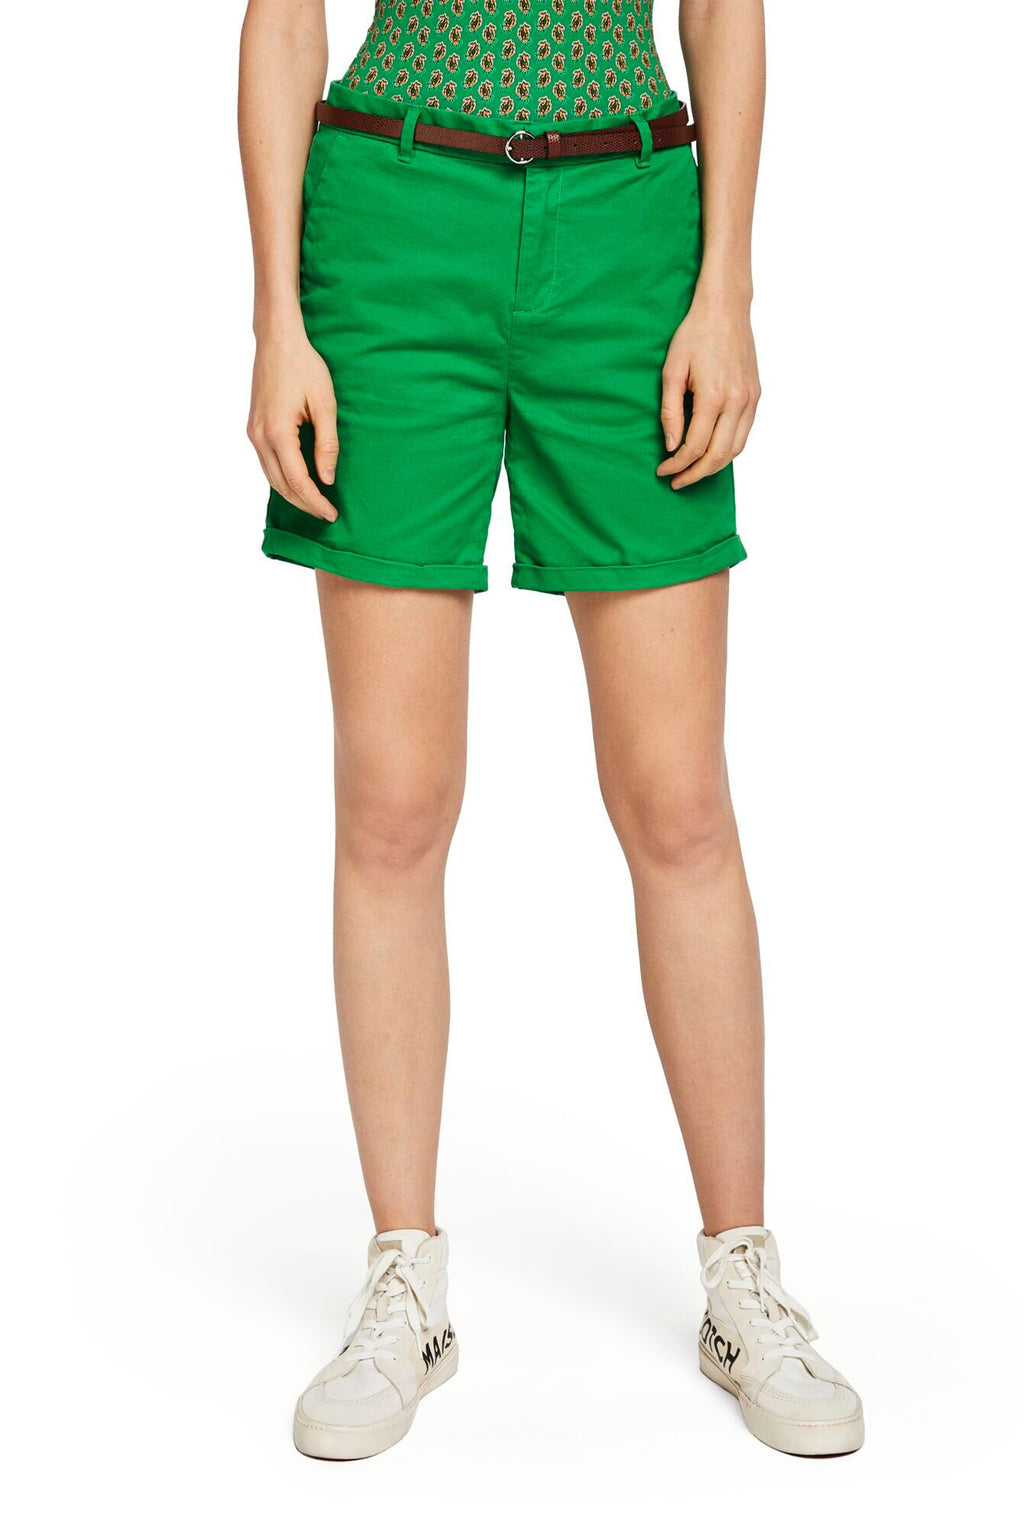 SCOTCH AND SODA - Belted Chino Shorts online at PAYA boutique